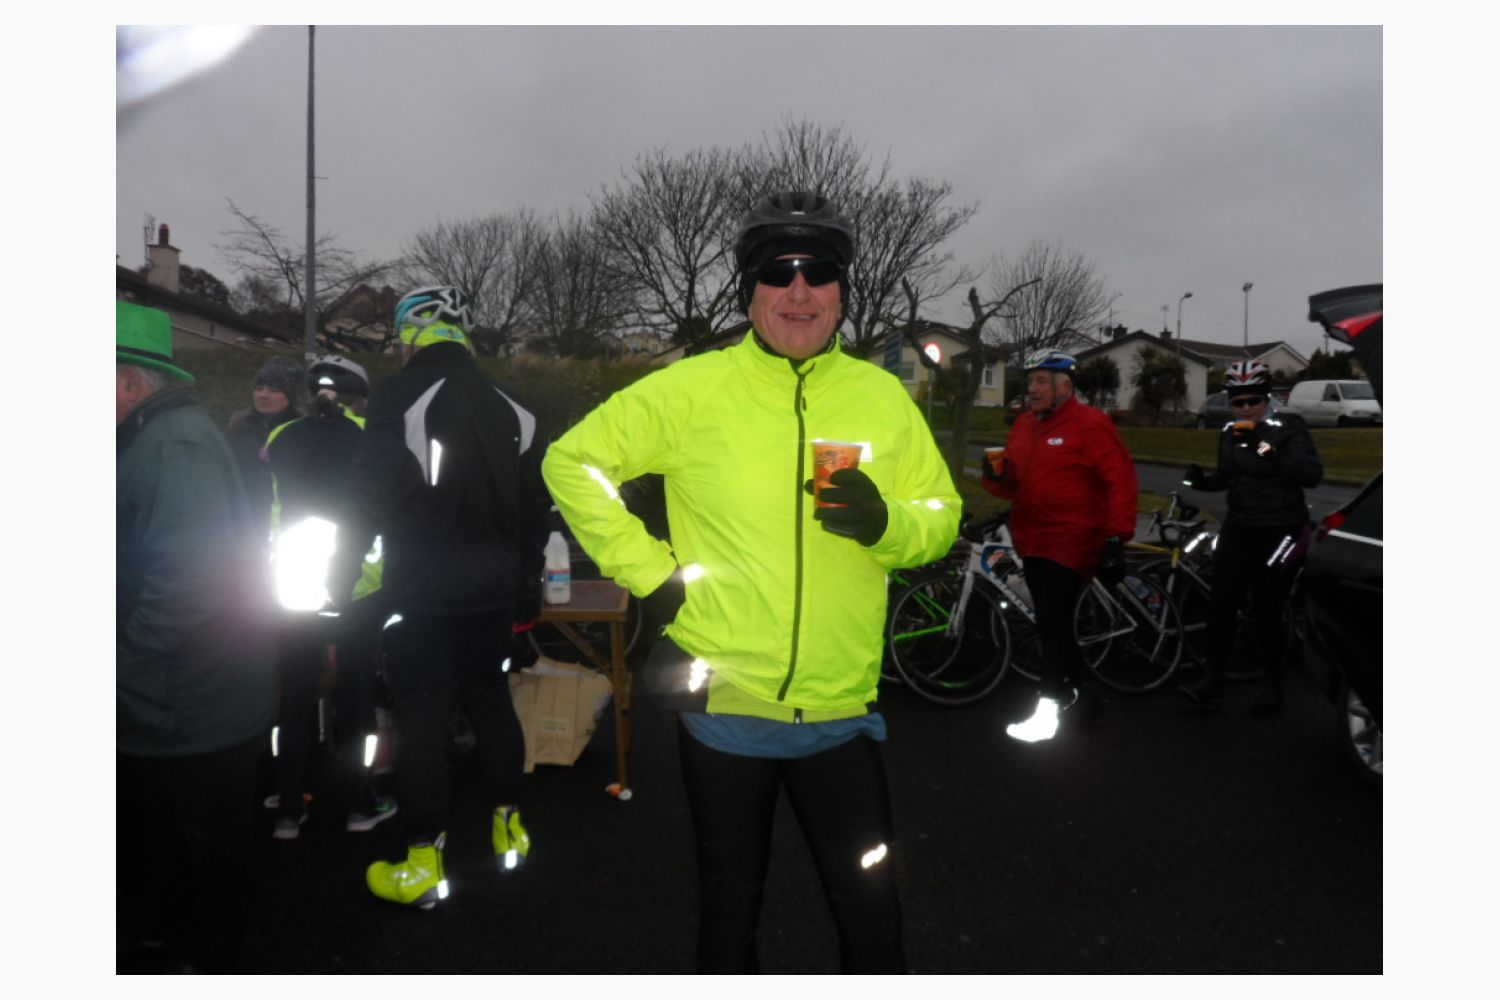 Annual St Patricks Day Cycle In Support of Laura Lynn - Saturday March 17th 2018